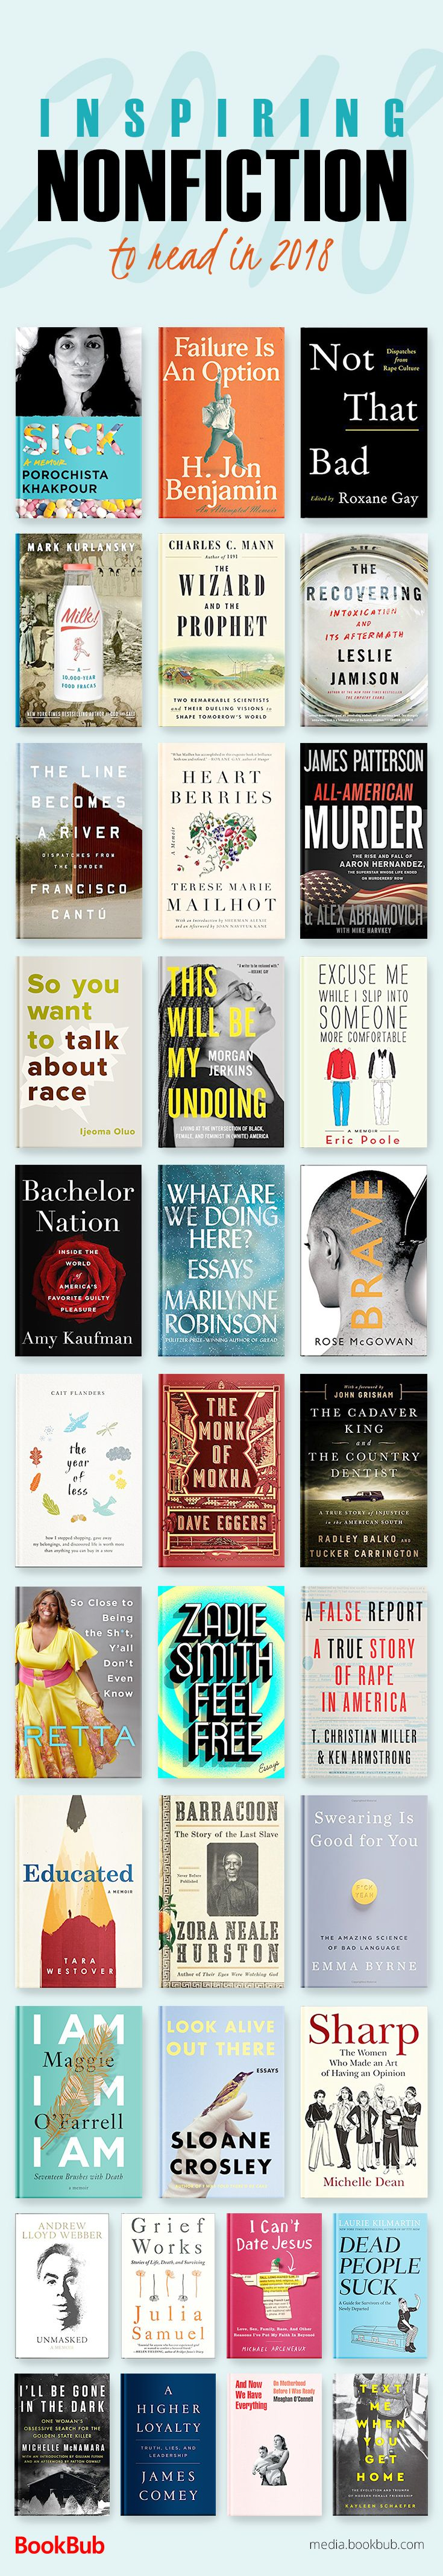 35 nonfiction books to read in 2018, including a mix of self help books, funny stories, inspirational books, books for women and men, and more.